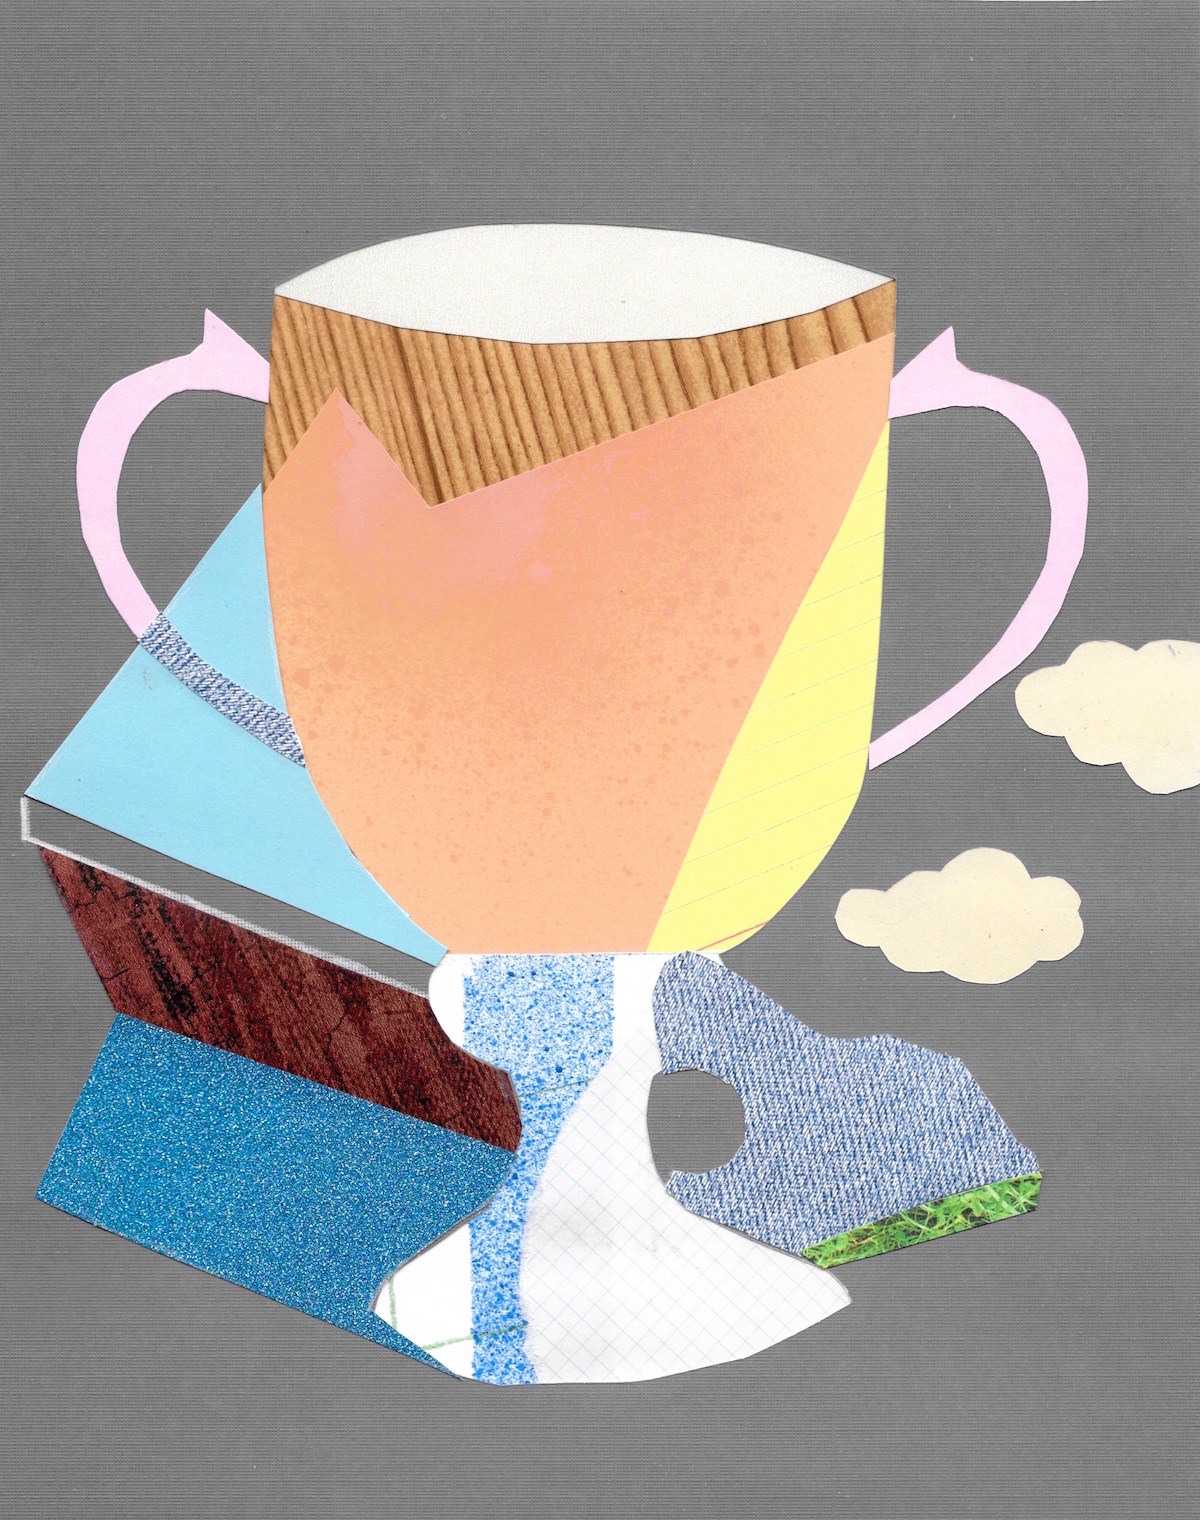 Silver Lining Cup or the Daydream Award